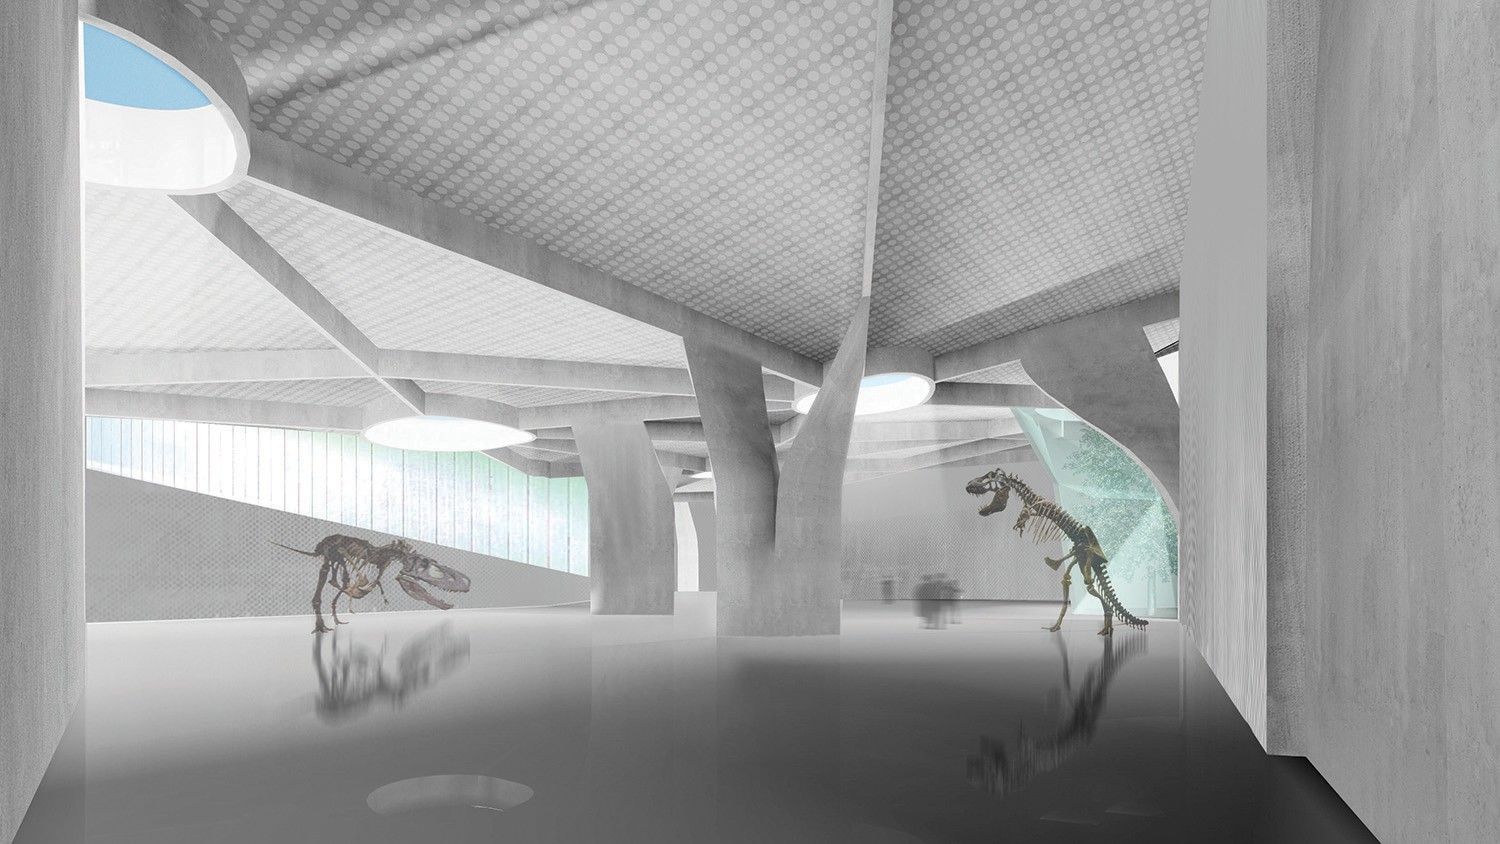 https://stevenholl.sfo2.digitaloceanspaces.com/uploads/projects/project-images/StevenHollArchitects_LANH_interior3_WH.jpg